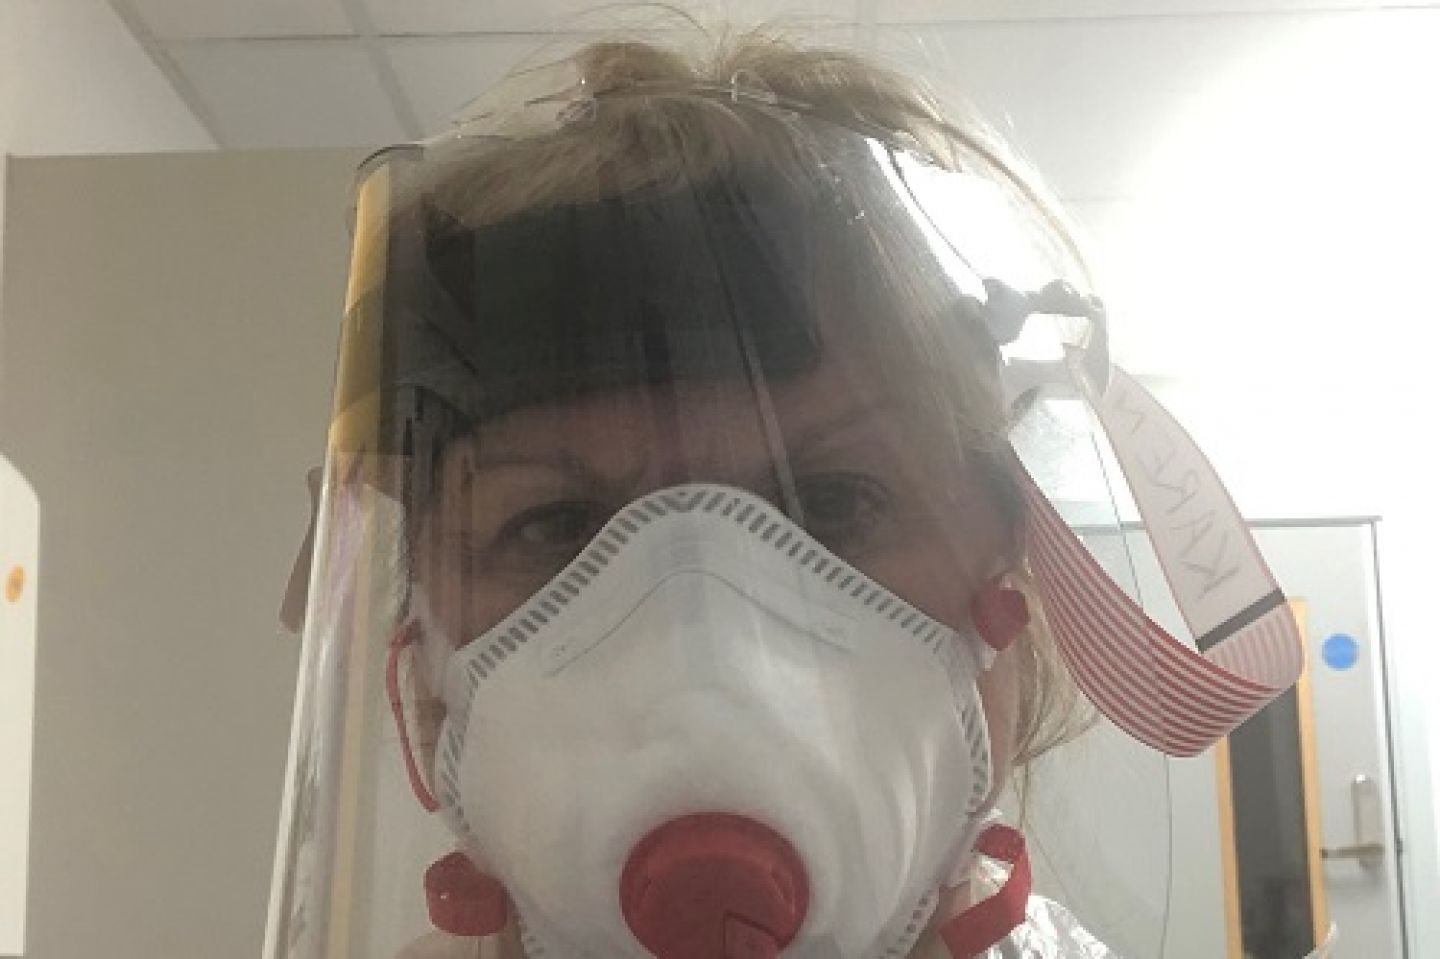 Karen Chandler, Lead of Division of Nursing at City, University of London, wearing PPE (Personal Protective Equipment)